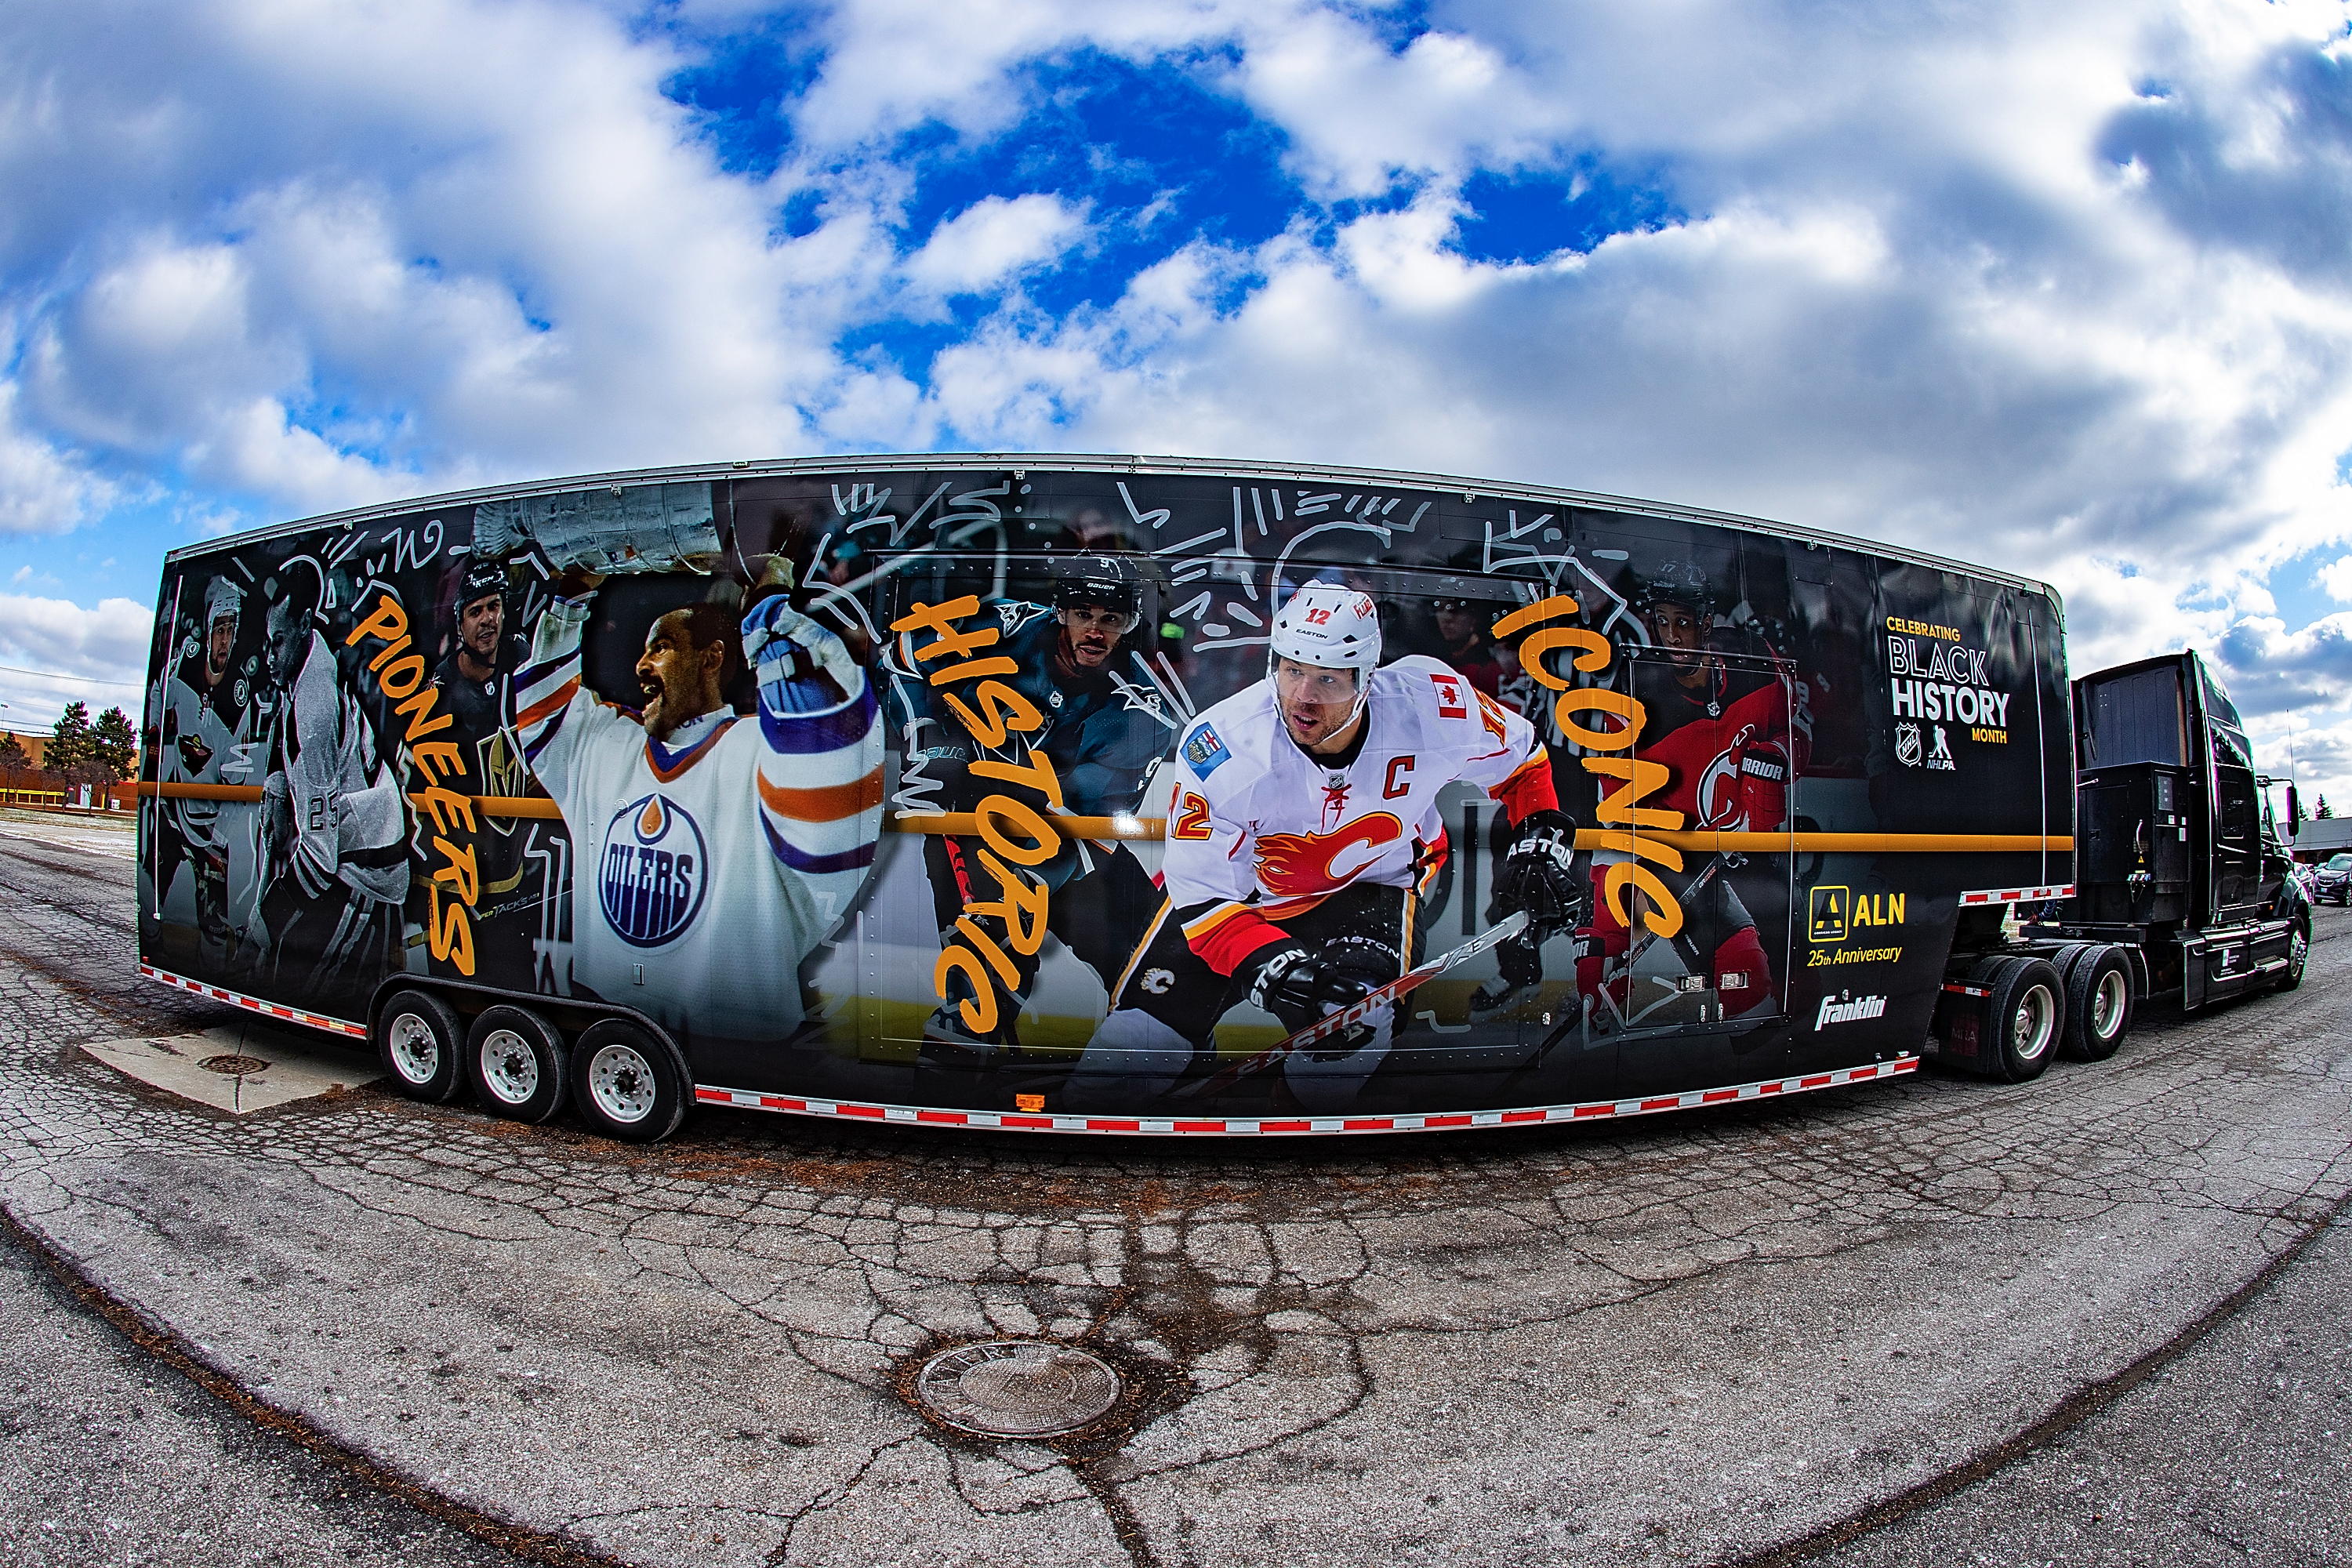 Flint youth players take in NHL Black Hockey History Tour